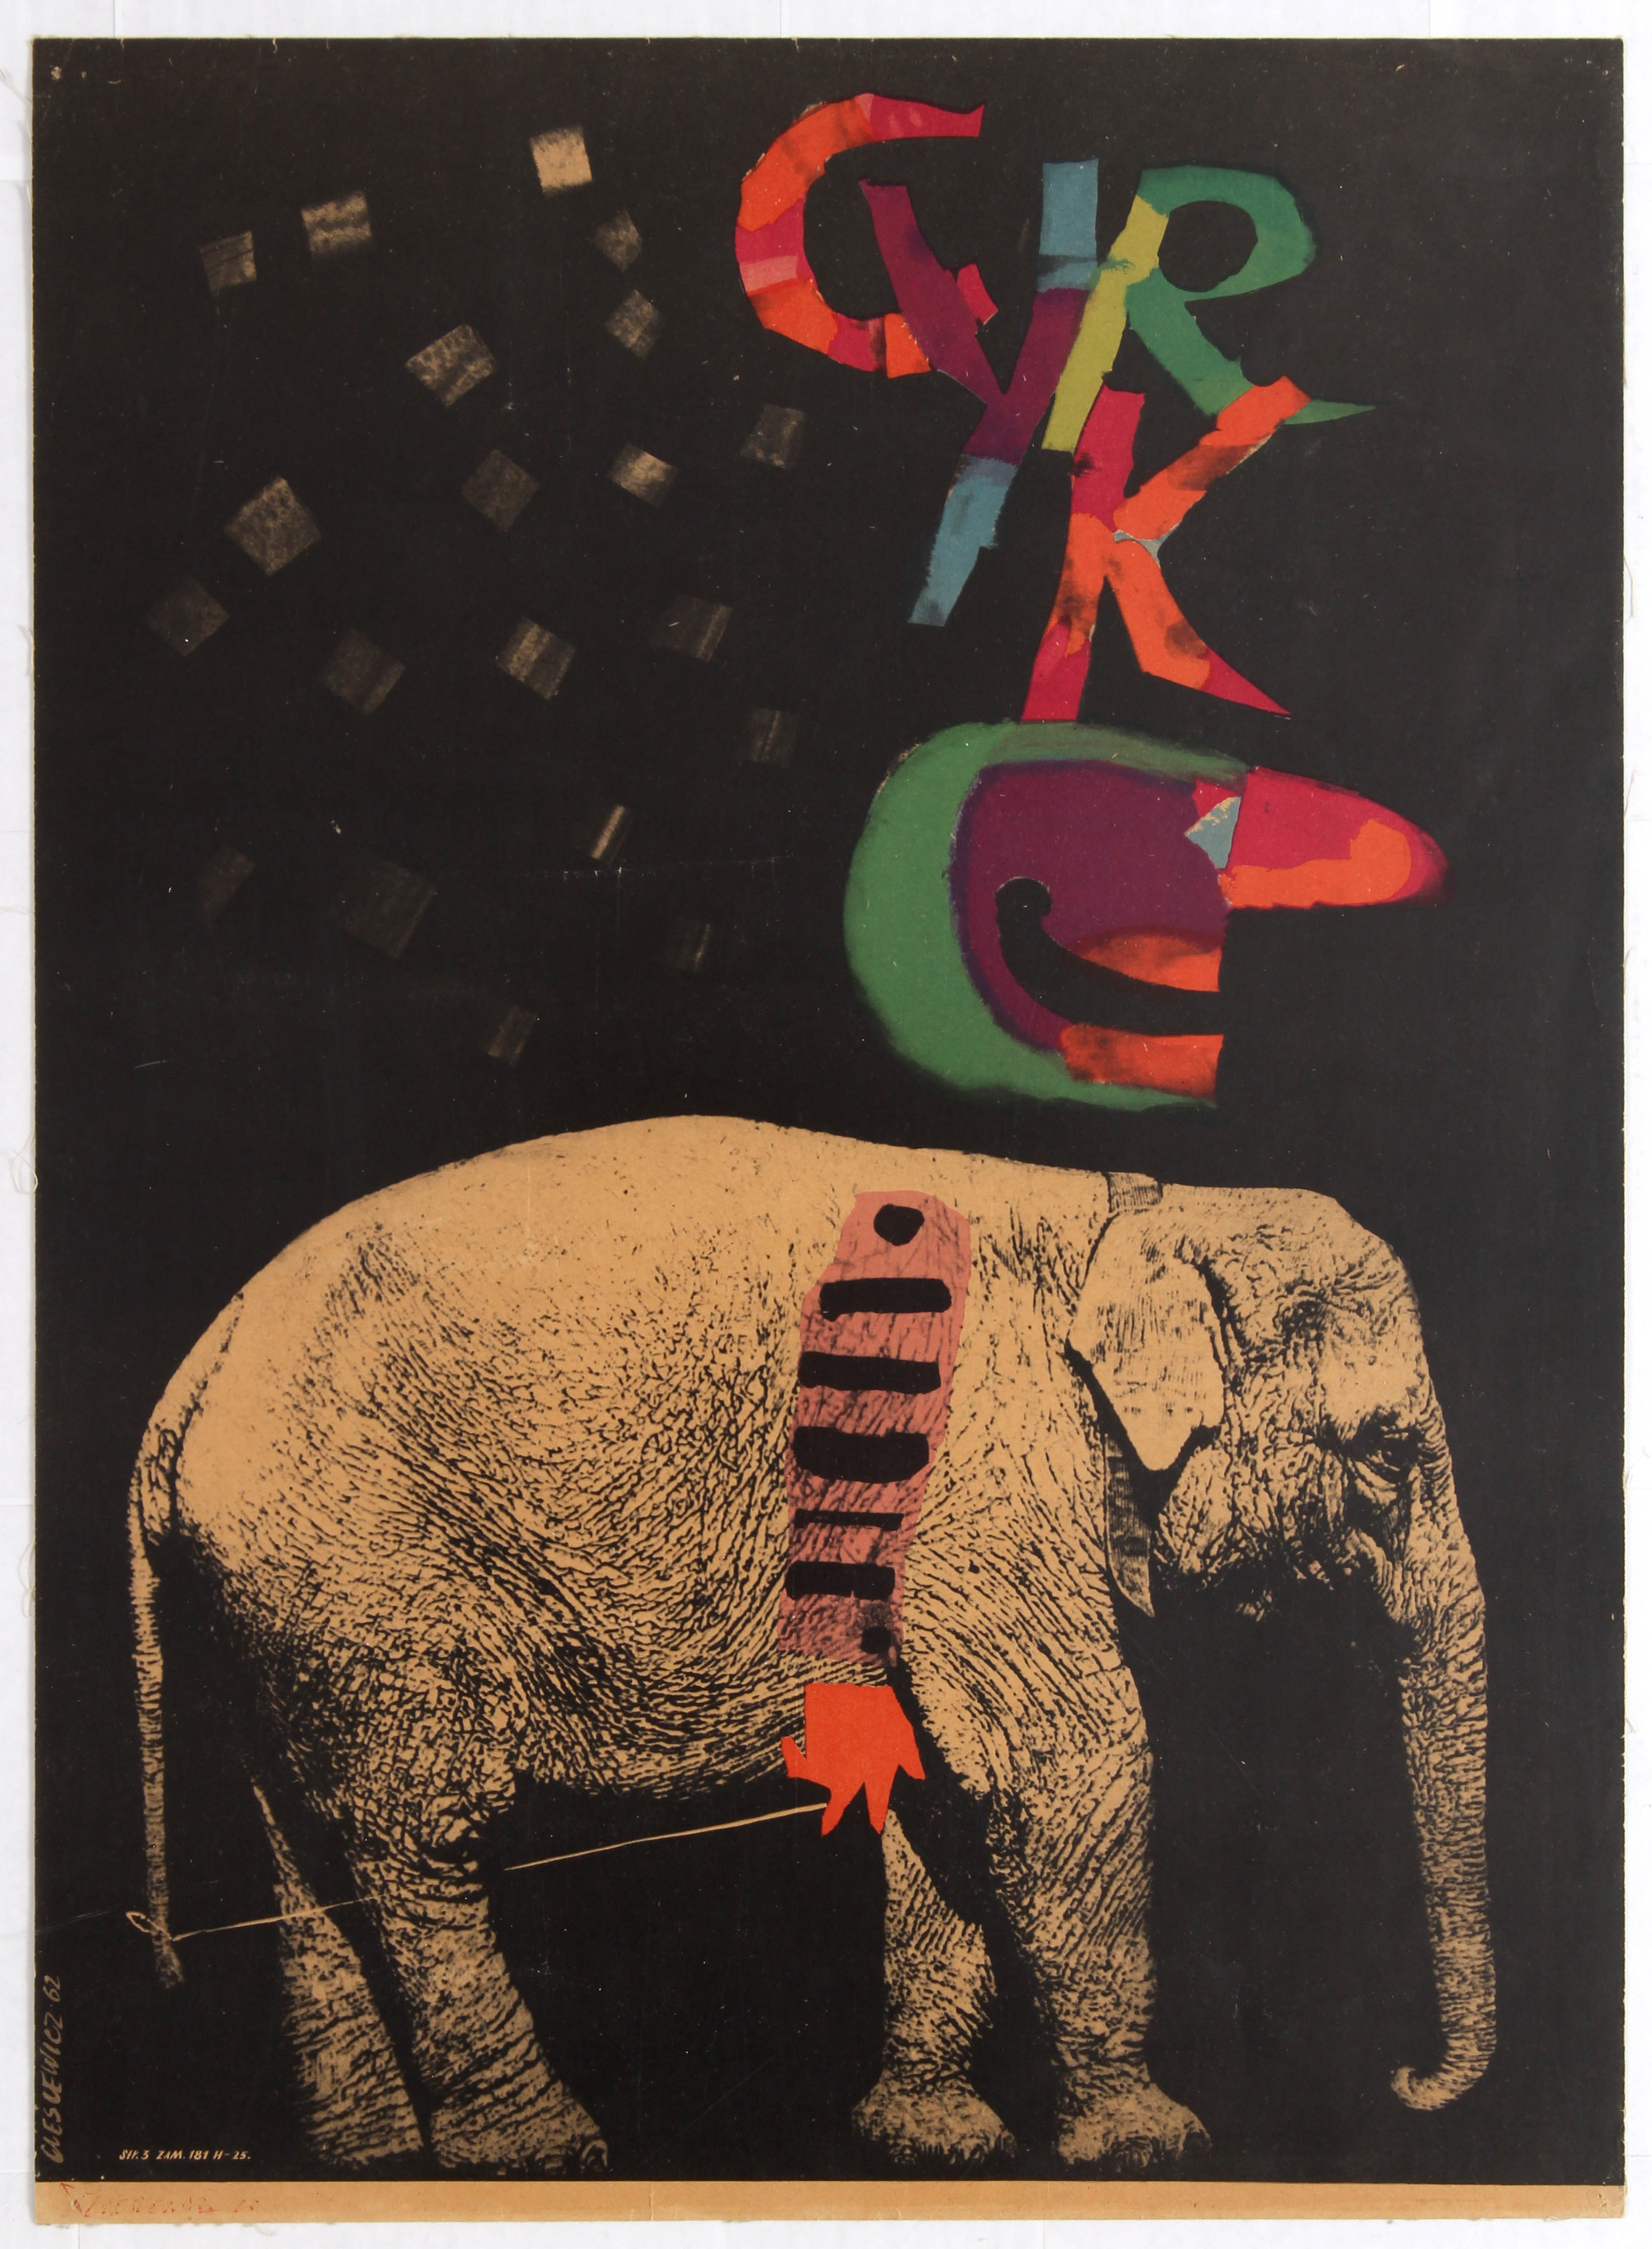 Lot 1604 - Advertising Polish Circus poster – Cyrk, Elephant